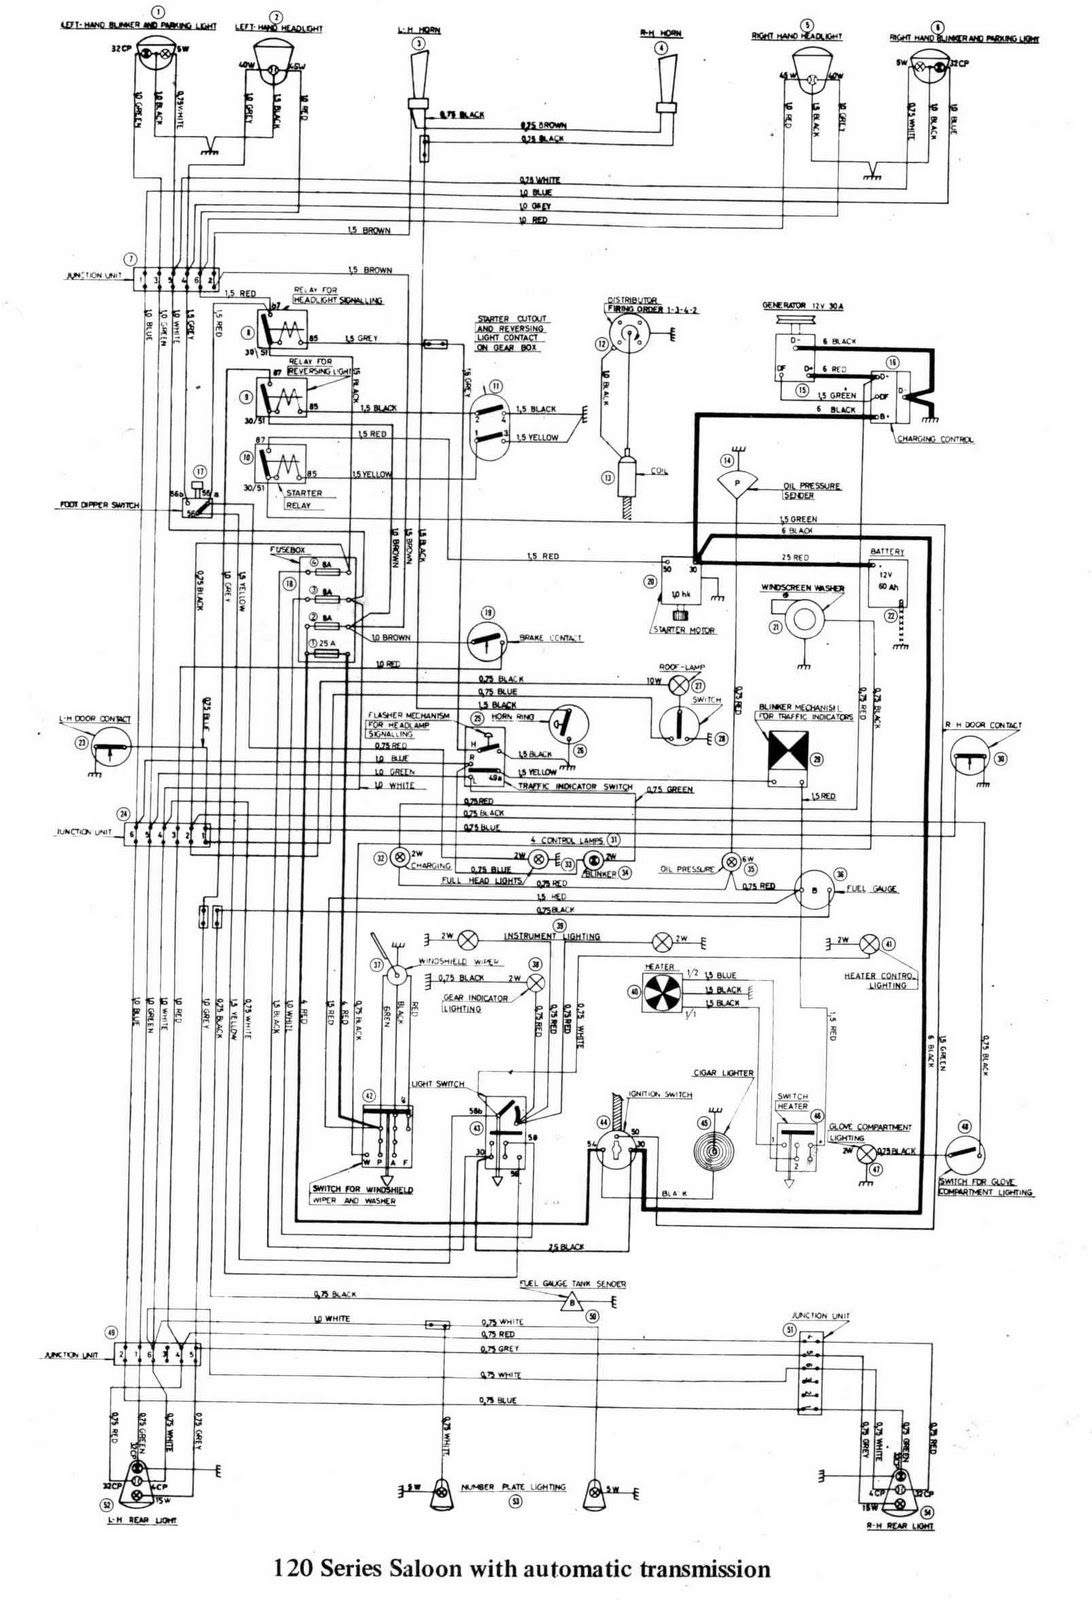 wiring diagrams for volvo s60 -human skeleton with organs diagram | begeboy wiring  diagram source  begeboy wiring diagram source